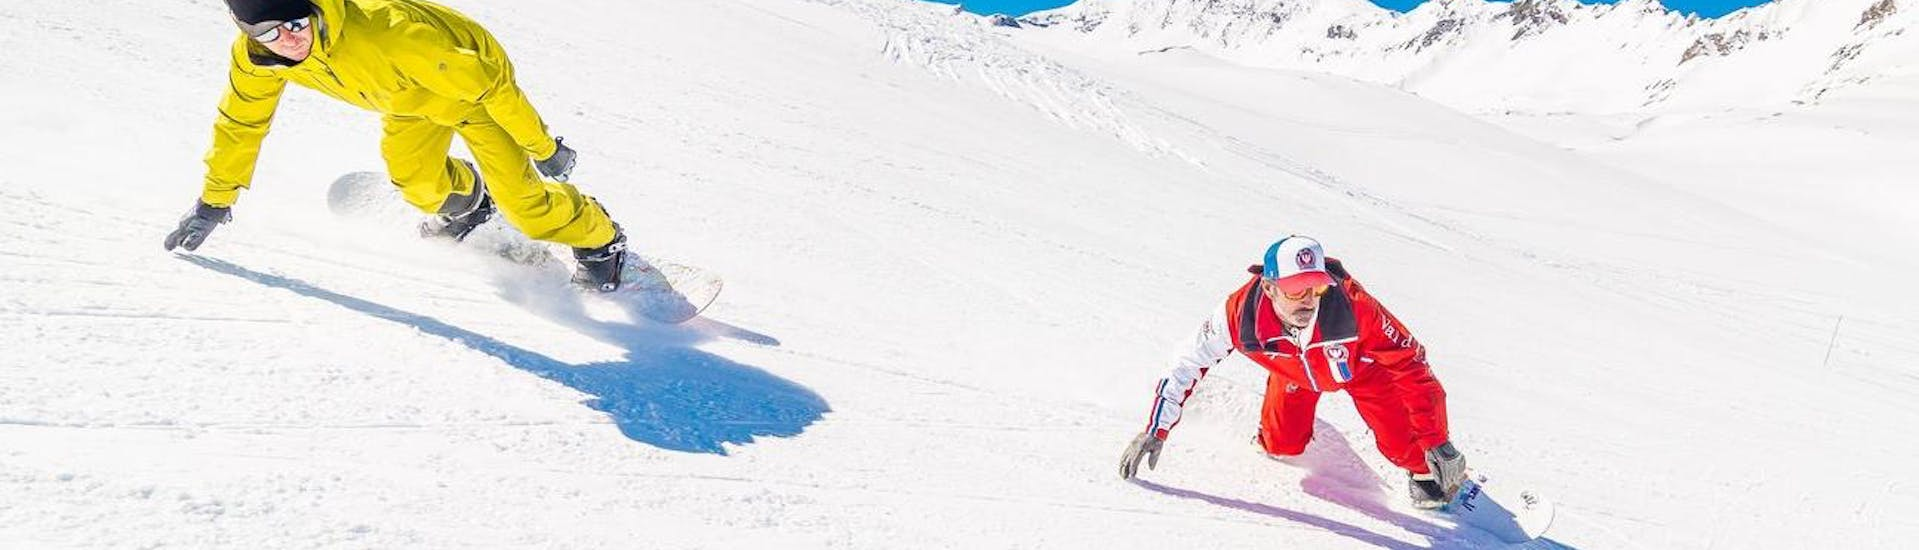 Two snowboarders are riding down the slope during the Snowboarding Lessons for Kids & Adults - All Levels organised by the school ESF Val d'Isère.